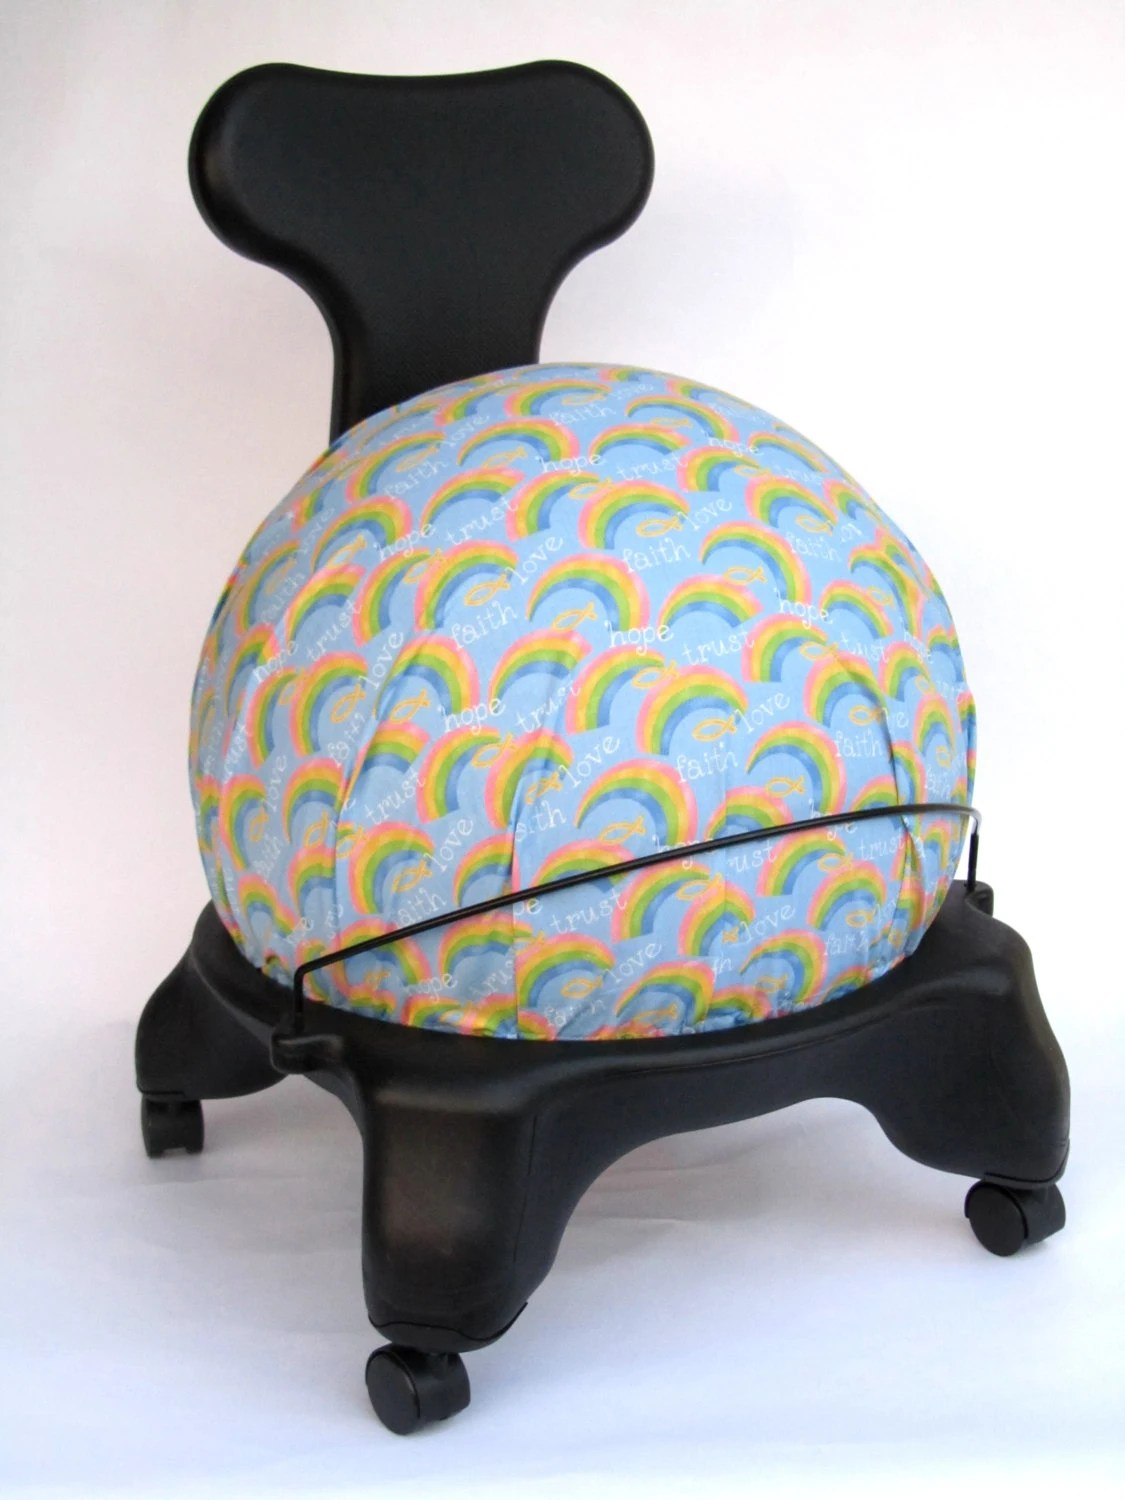 fitball balance ball chair hip surgery exercise cover fits isokinetics by